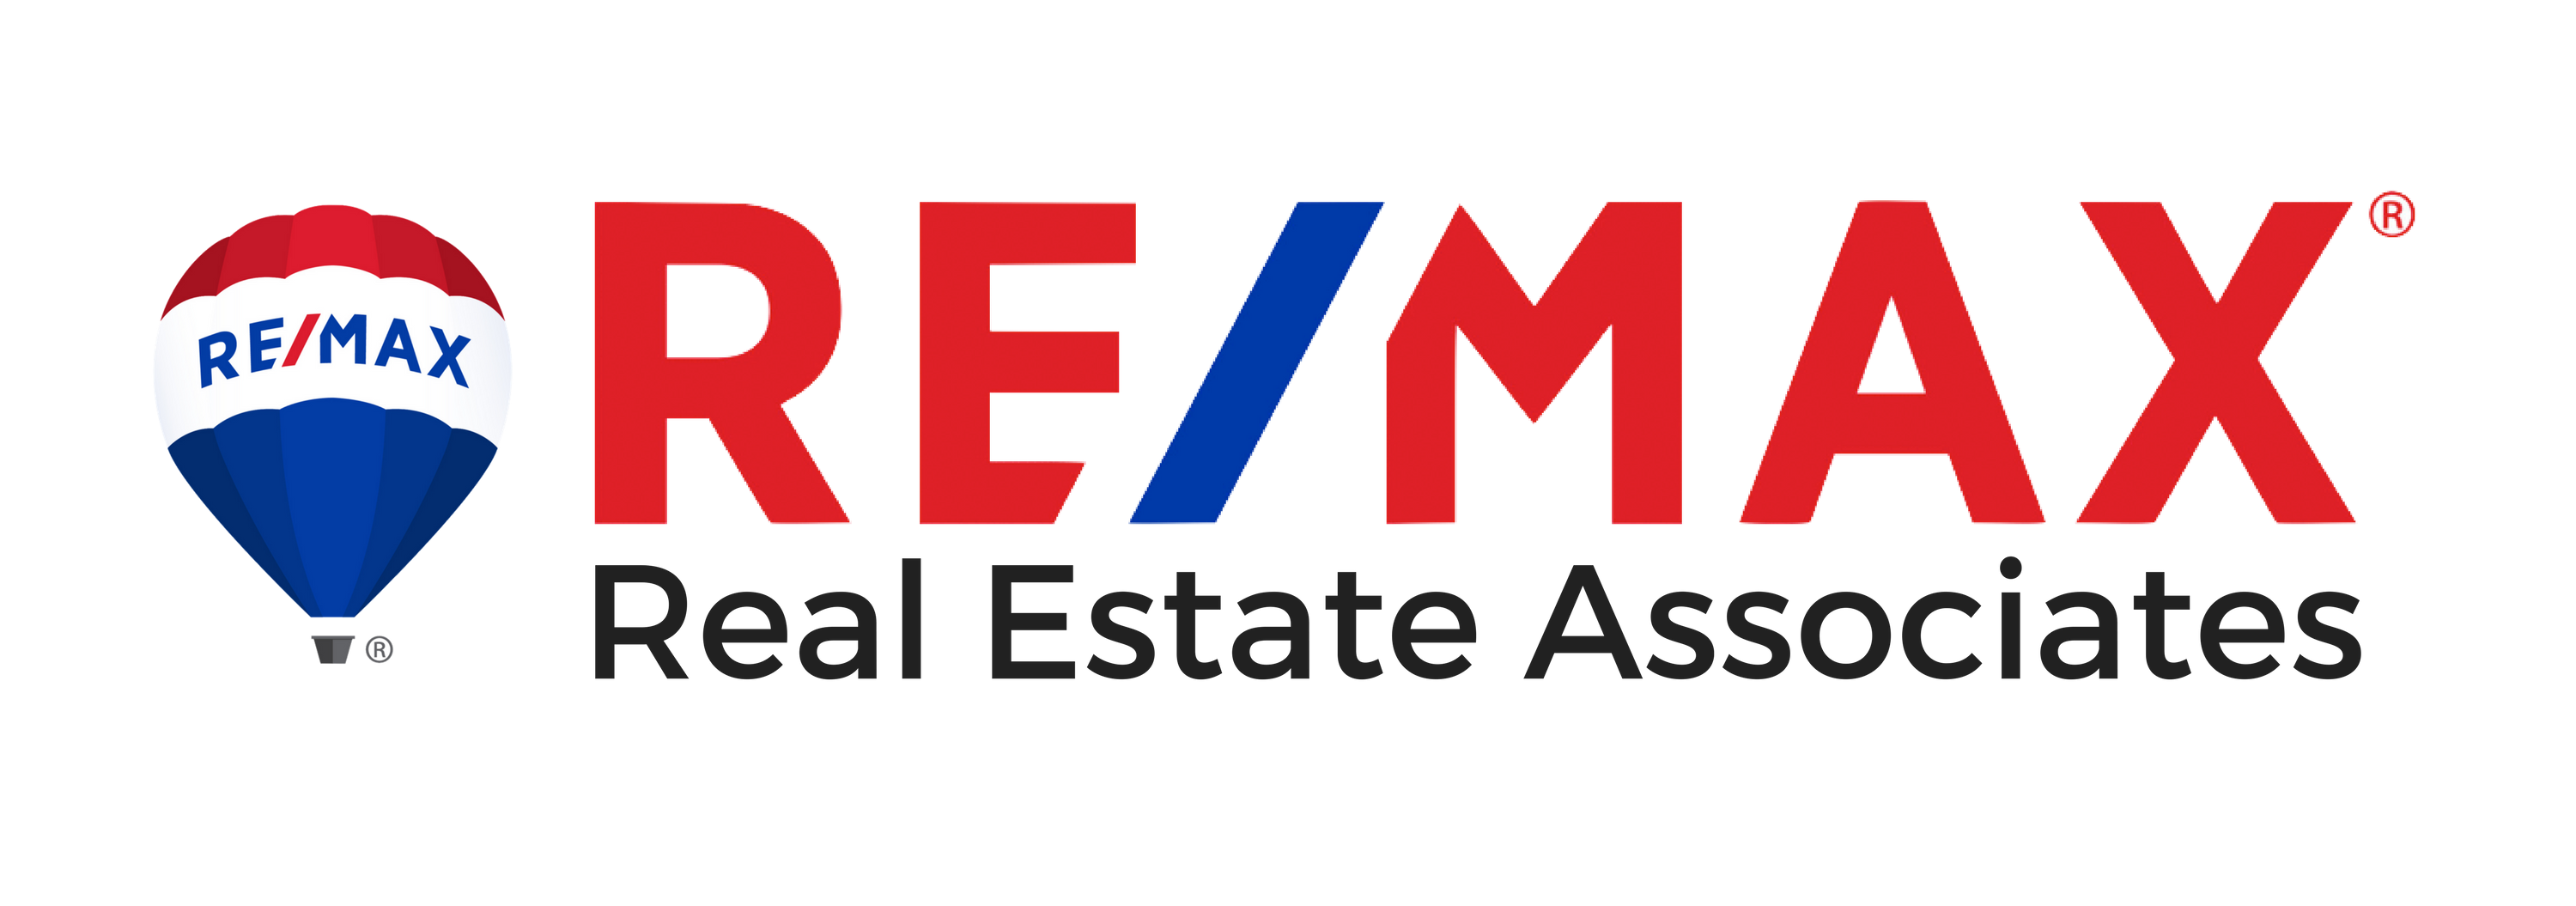 Remax logo png. Brand assets re max